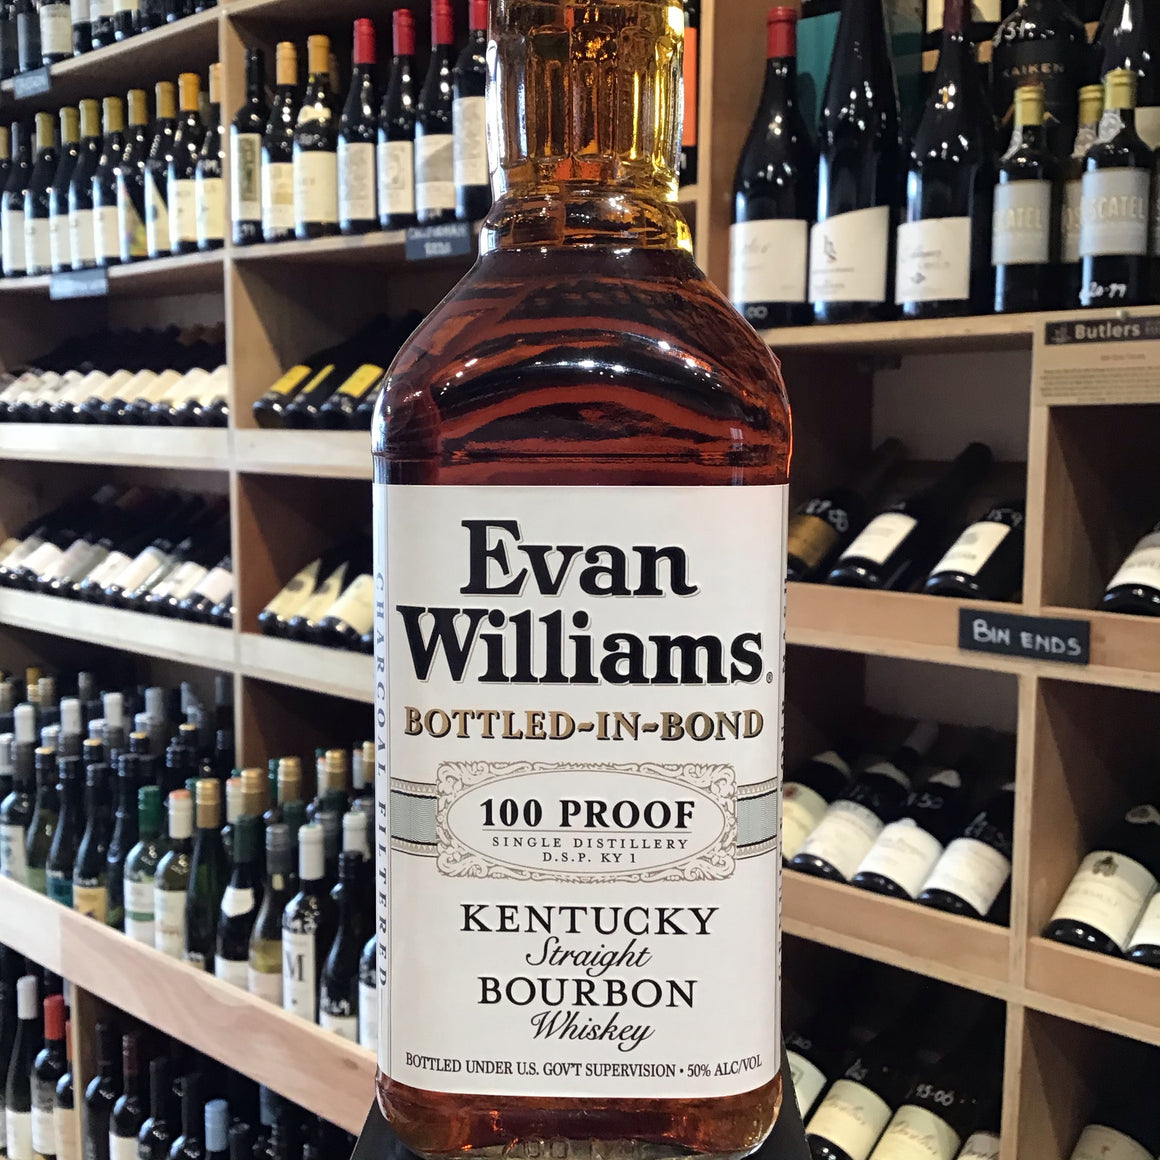 Evans Williams Sour Mash Bourbon Bottled in Bond 70cl 50% Abv - Butlers Wine Cellar Brighton